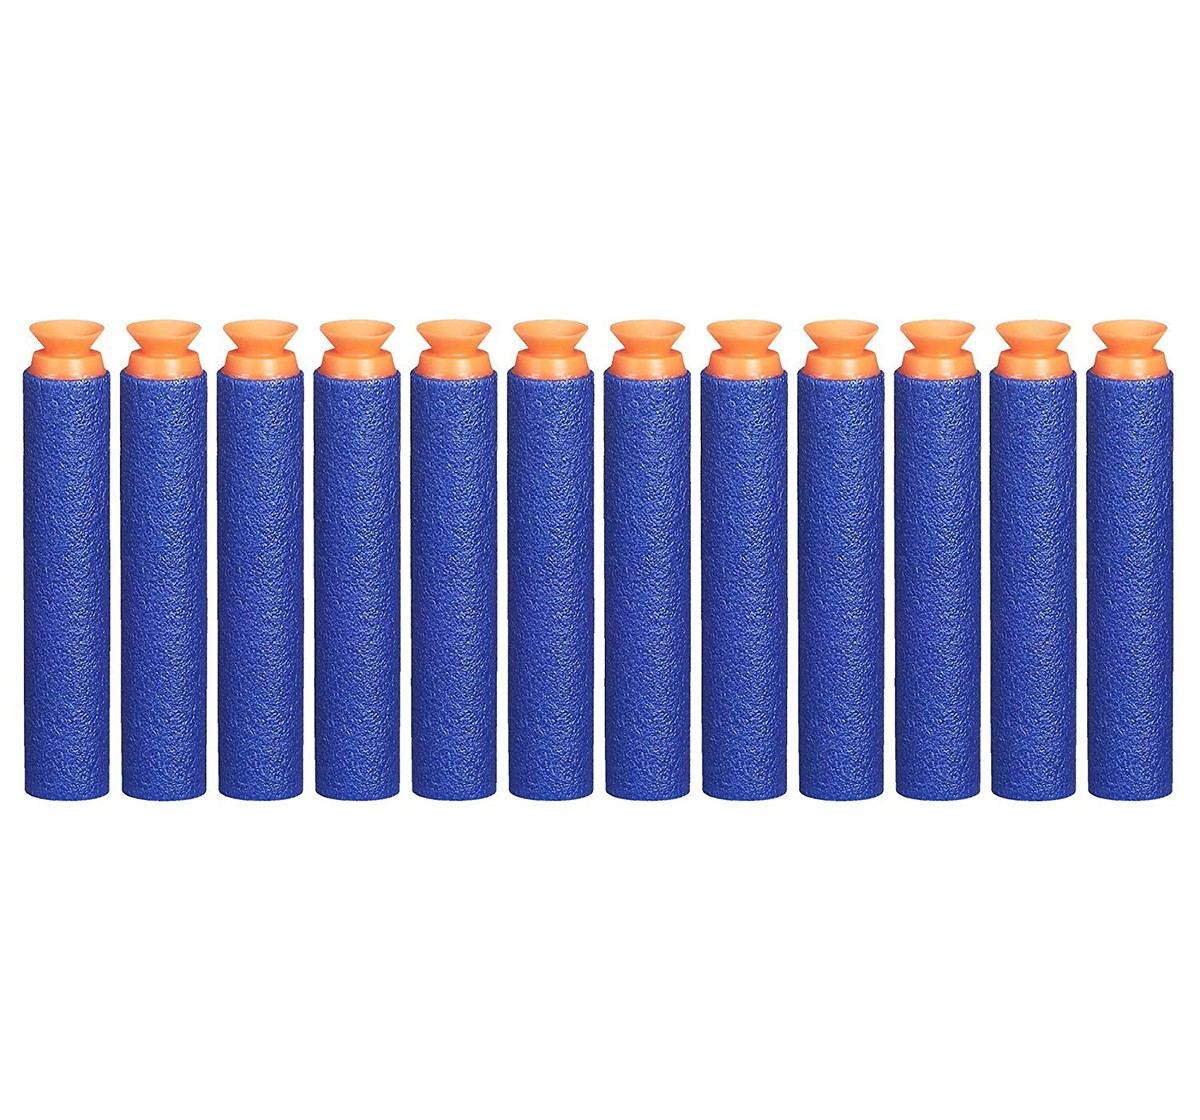 Nerf Suction Darts 12-Pack Refill For Nerf Elite Blasters - 8Y+